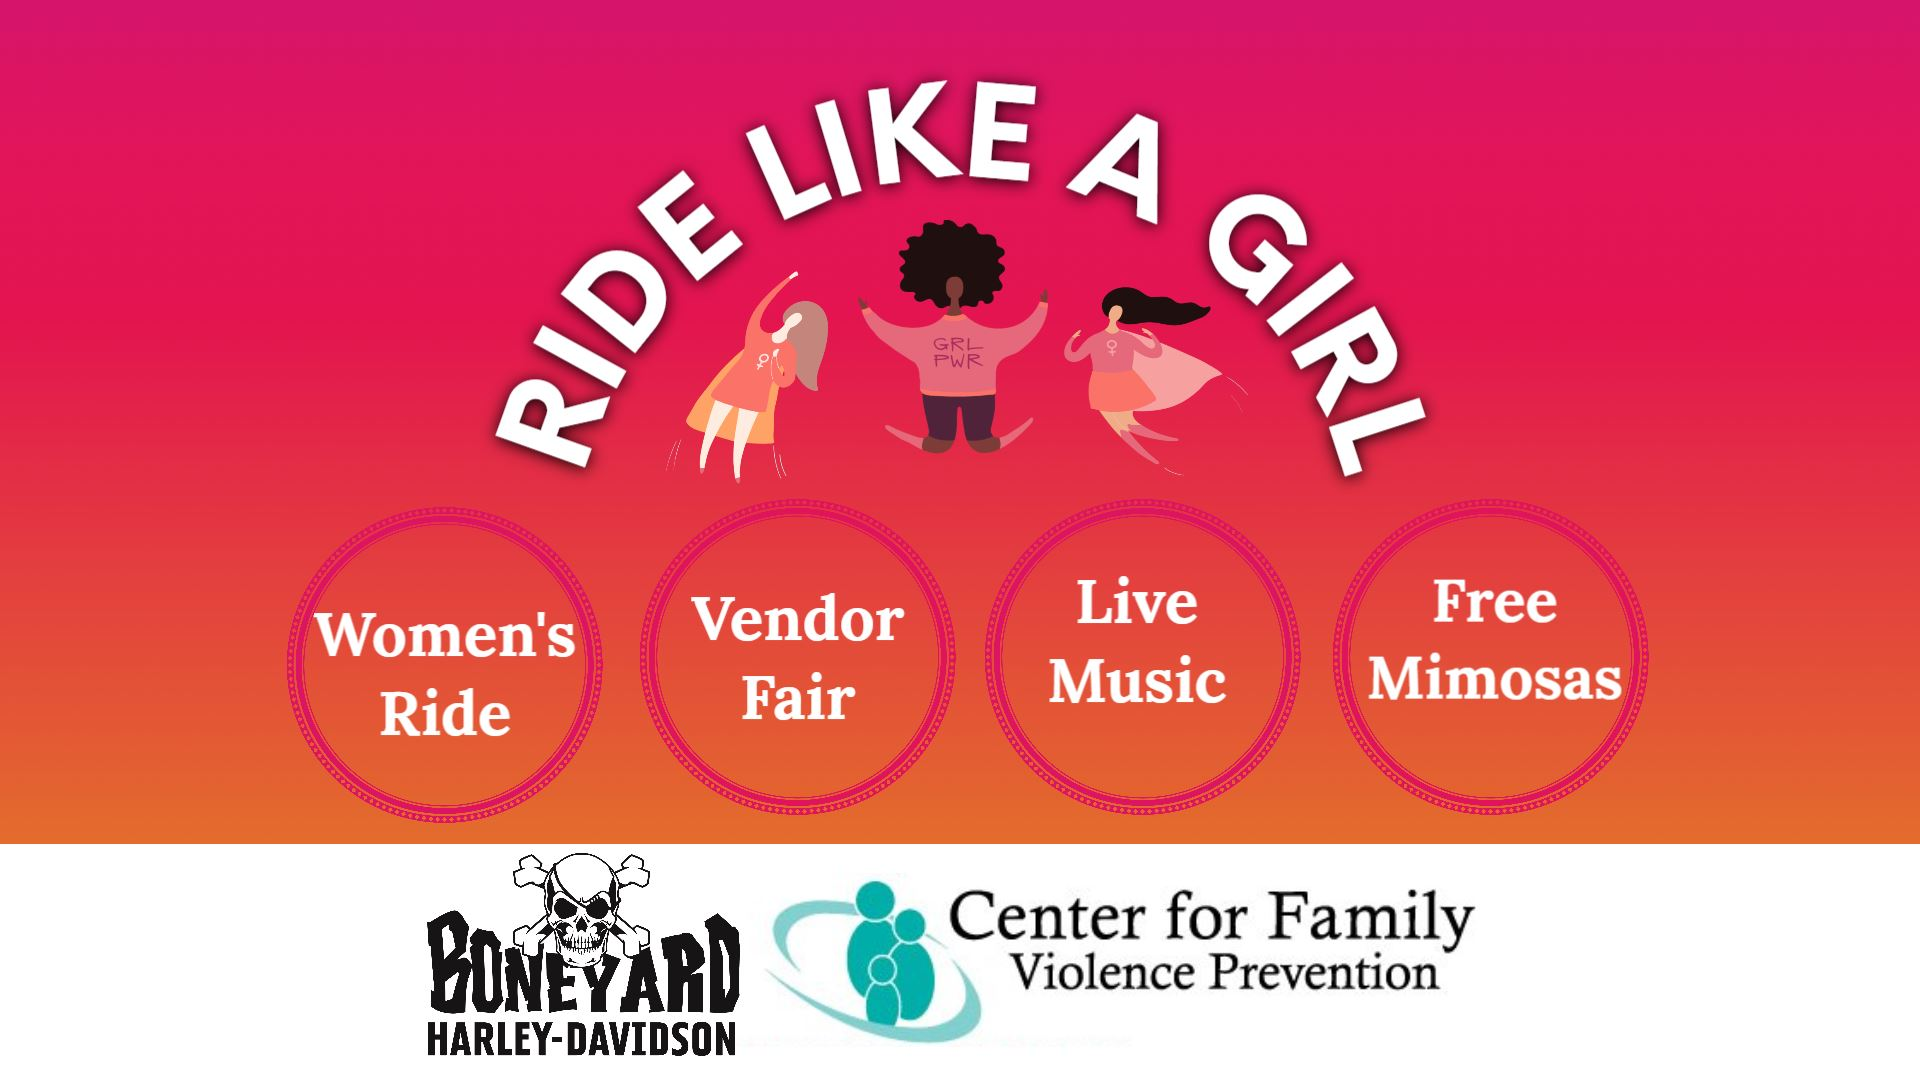 Ride Like A Girl Benefit For the Center for Family Violence Prevention